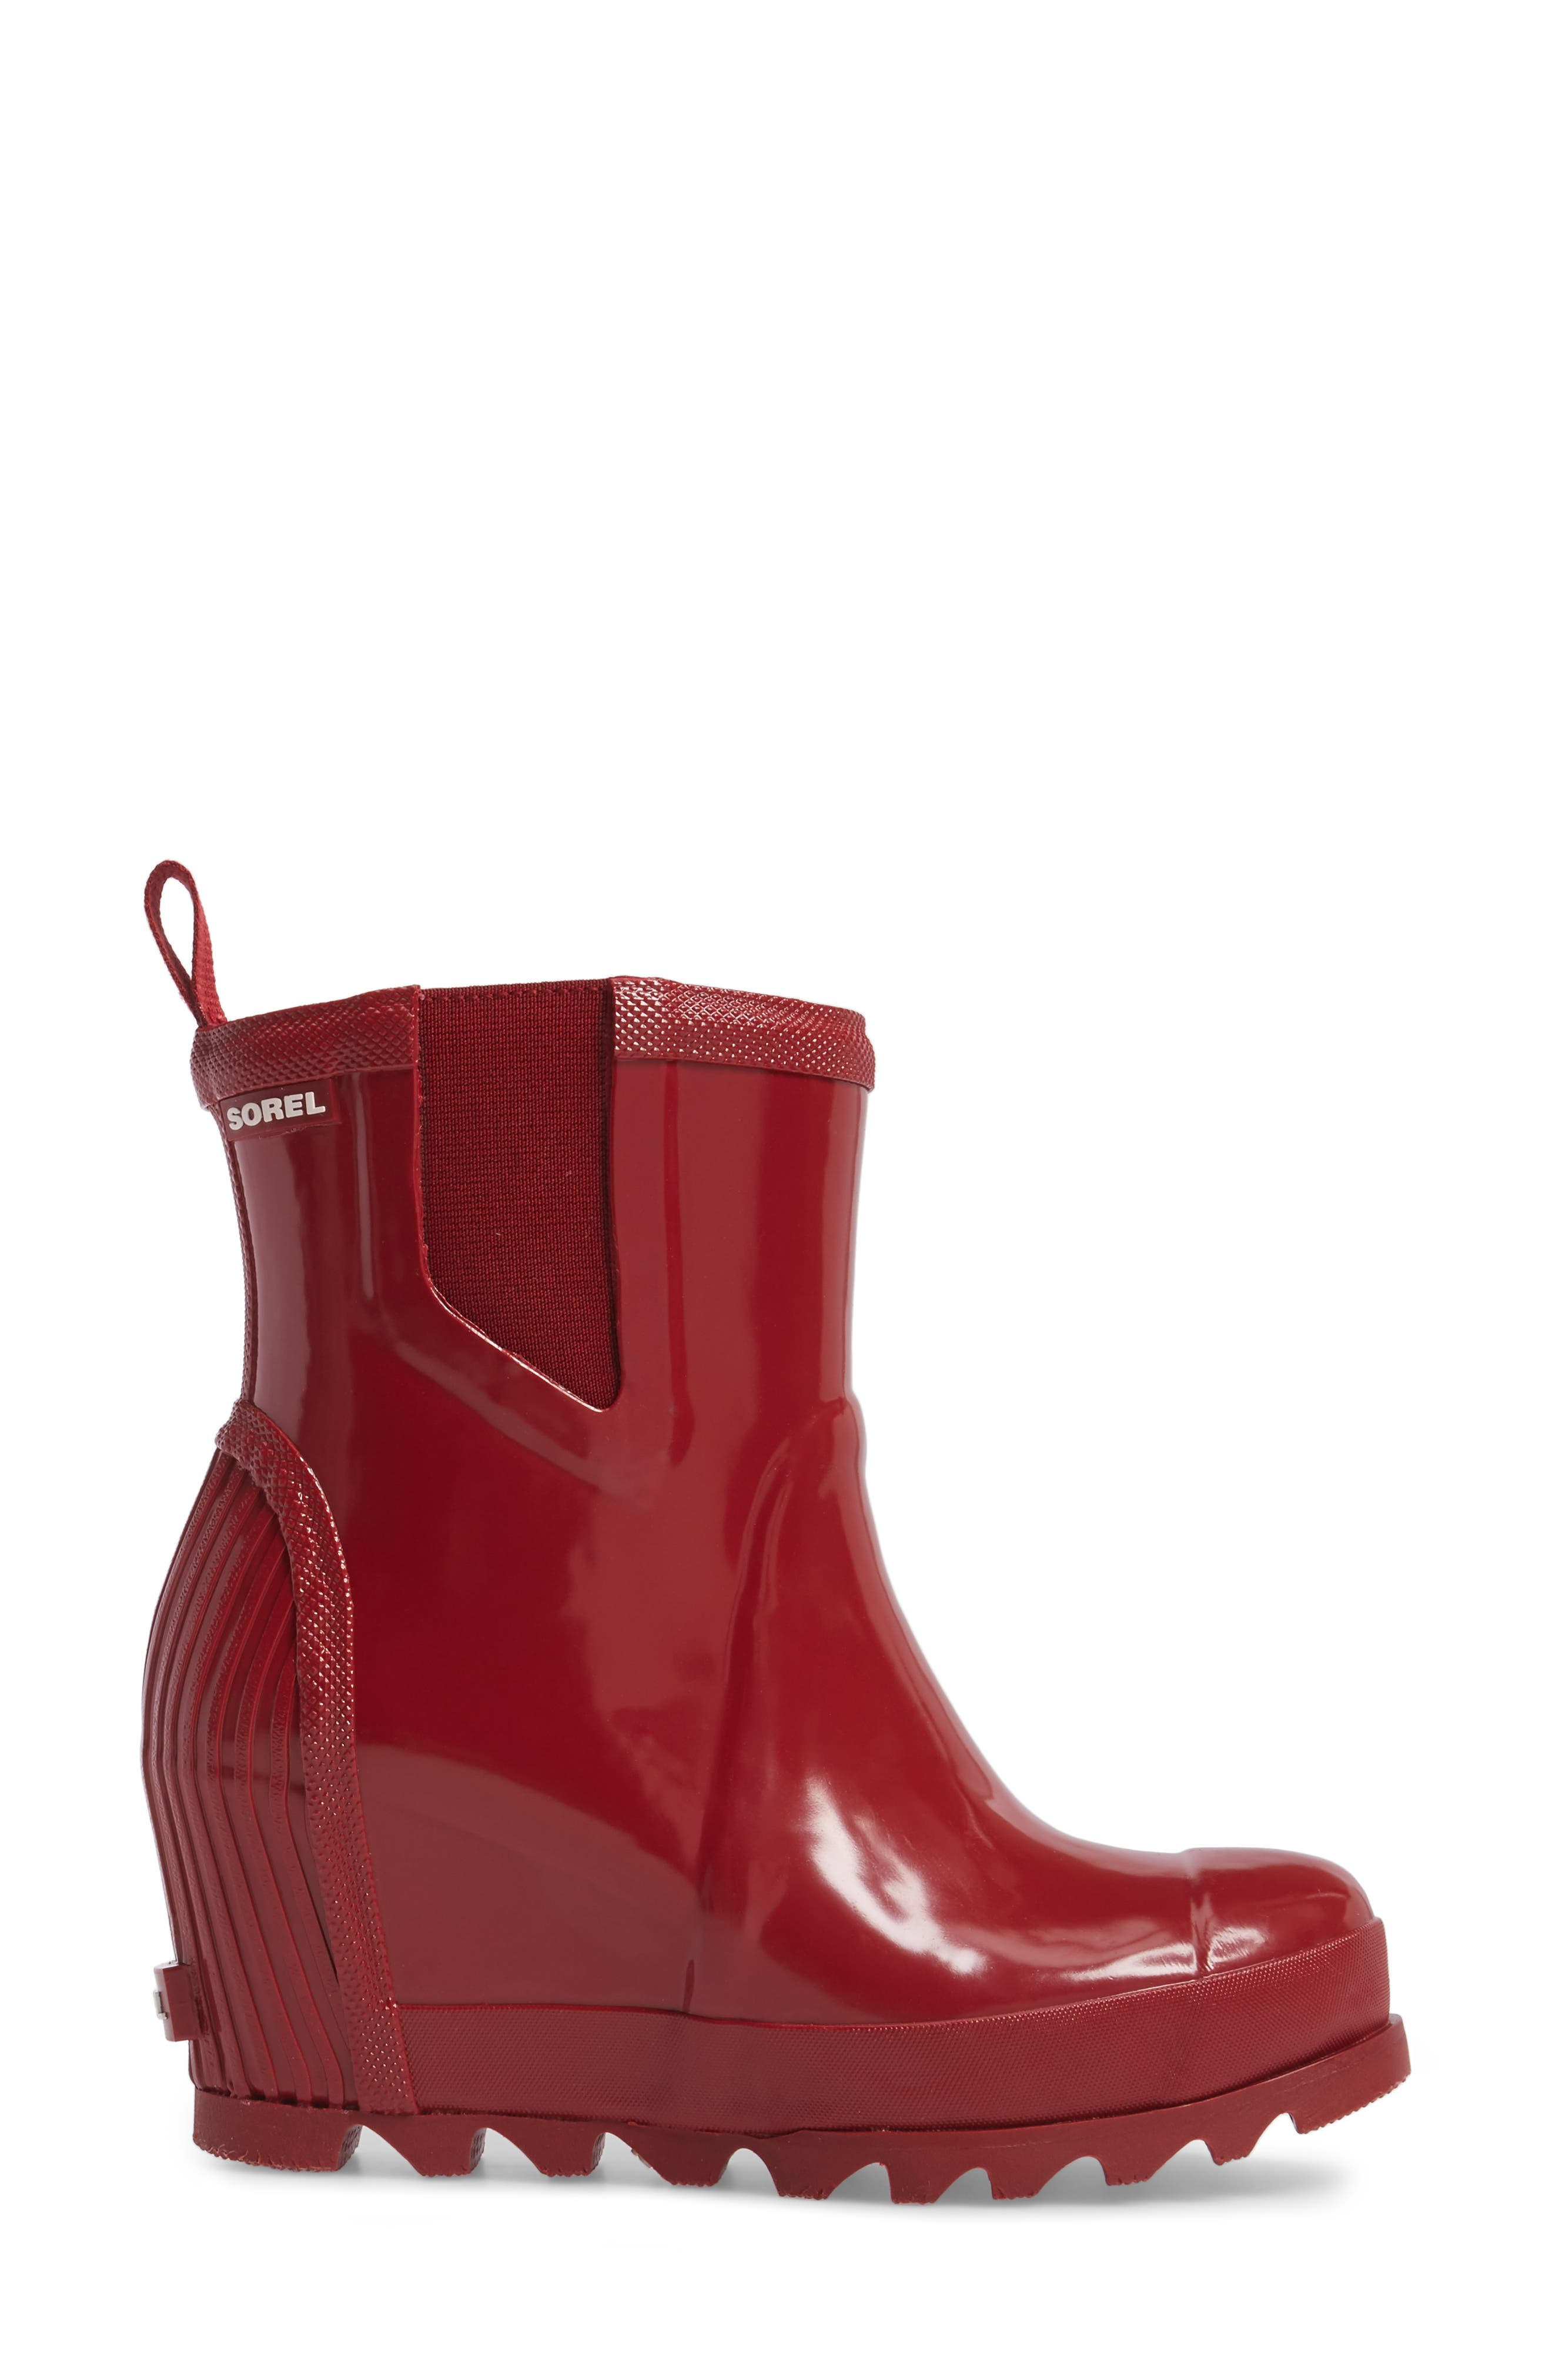 Joan Glossy Wedge Rain Boot,                             Alternate thumbnail 3, color,                             Red Dahlia/ Candy Apple